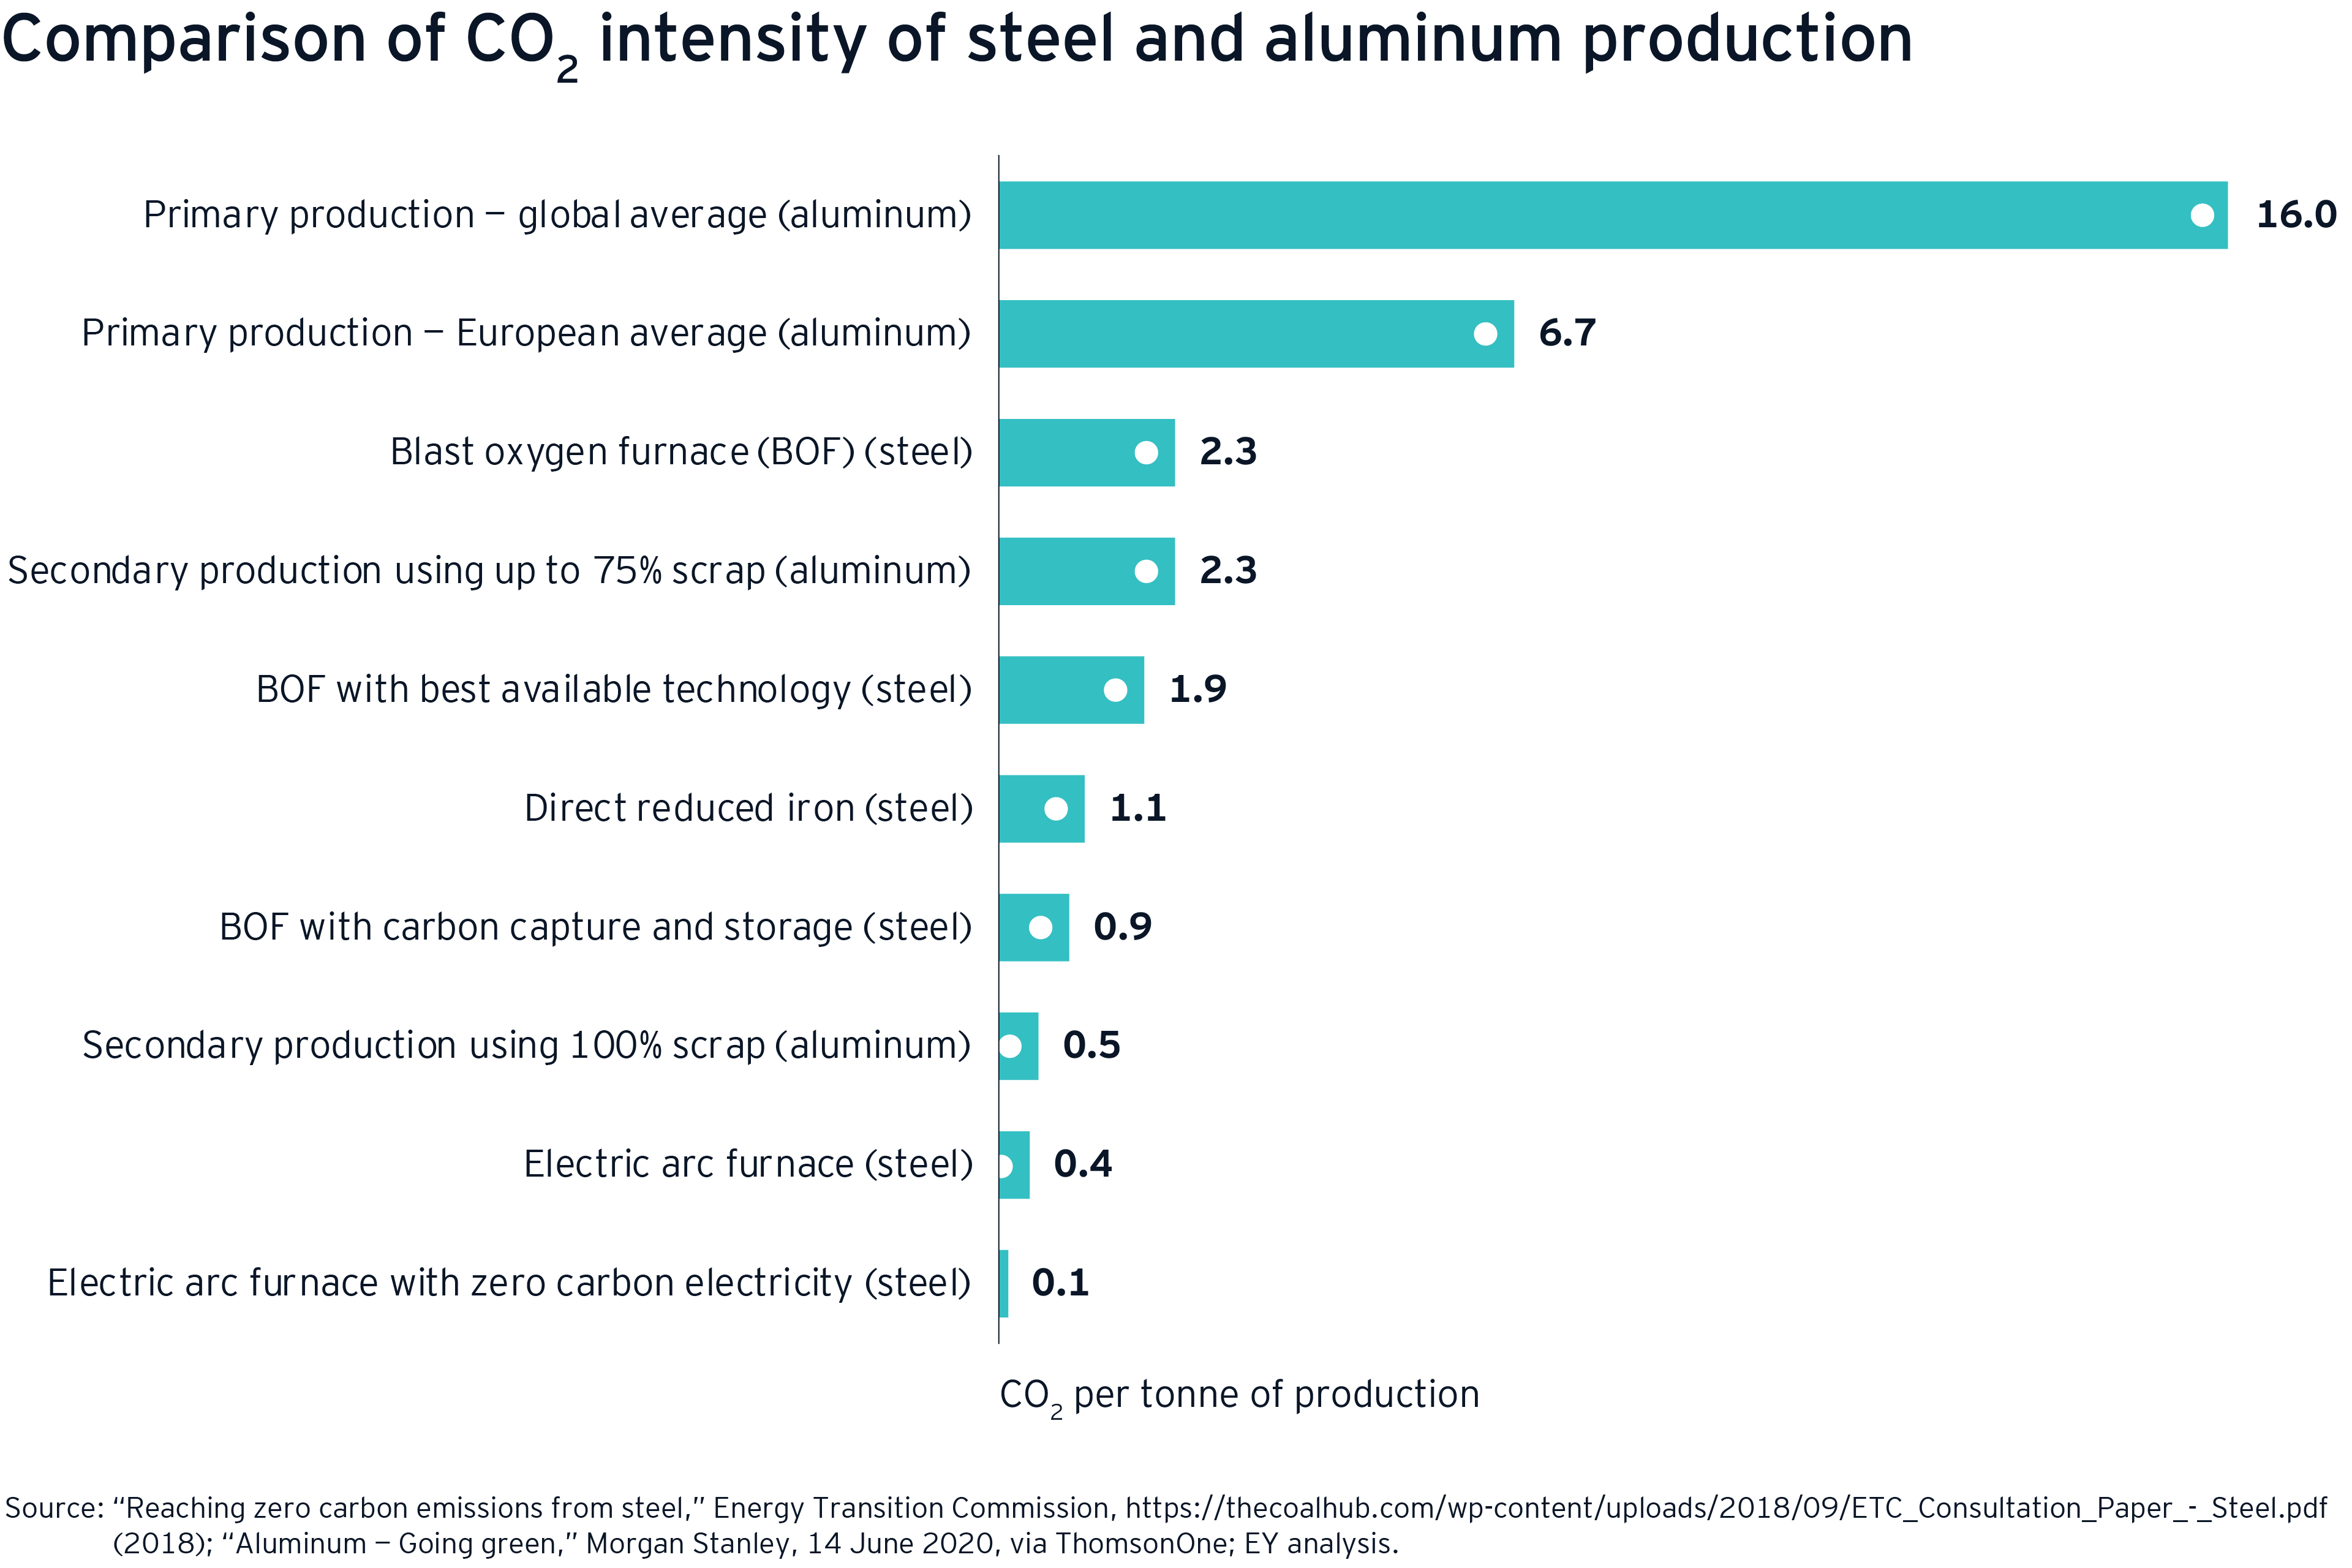 Comparison of CO2 intensity of steel and aluminum production